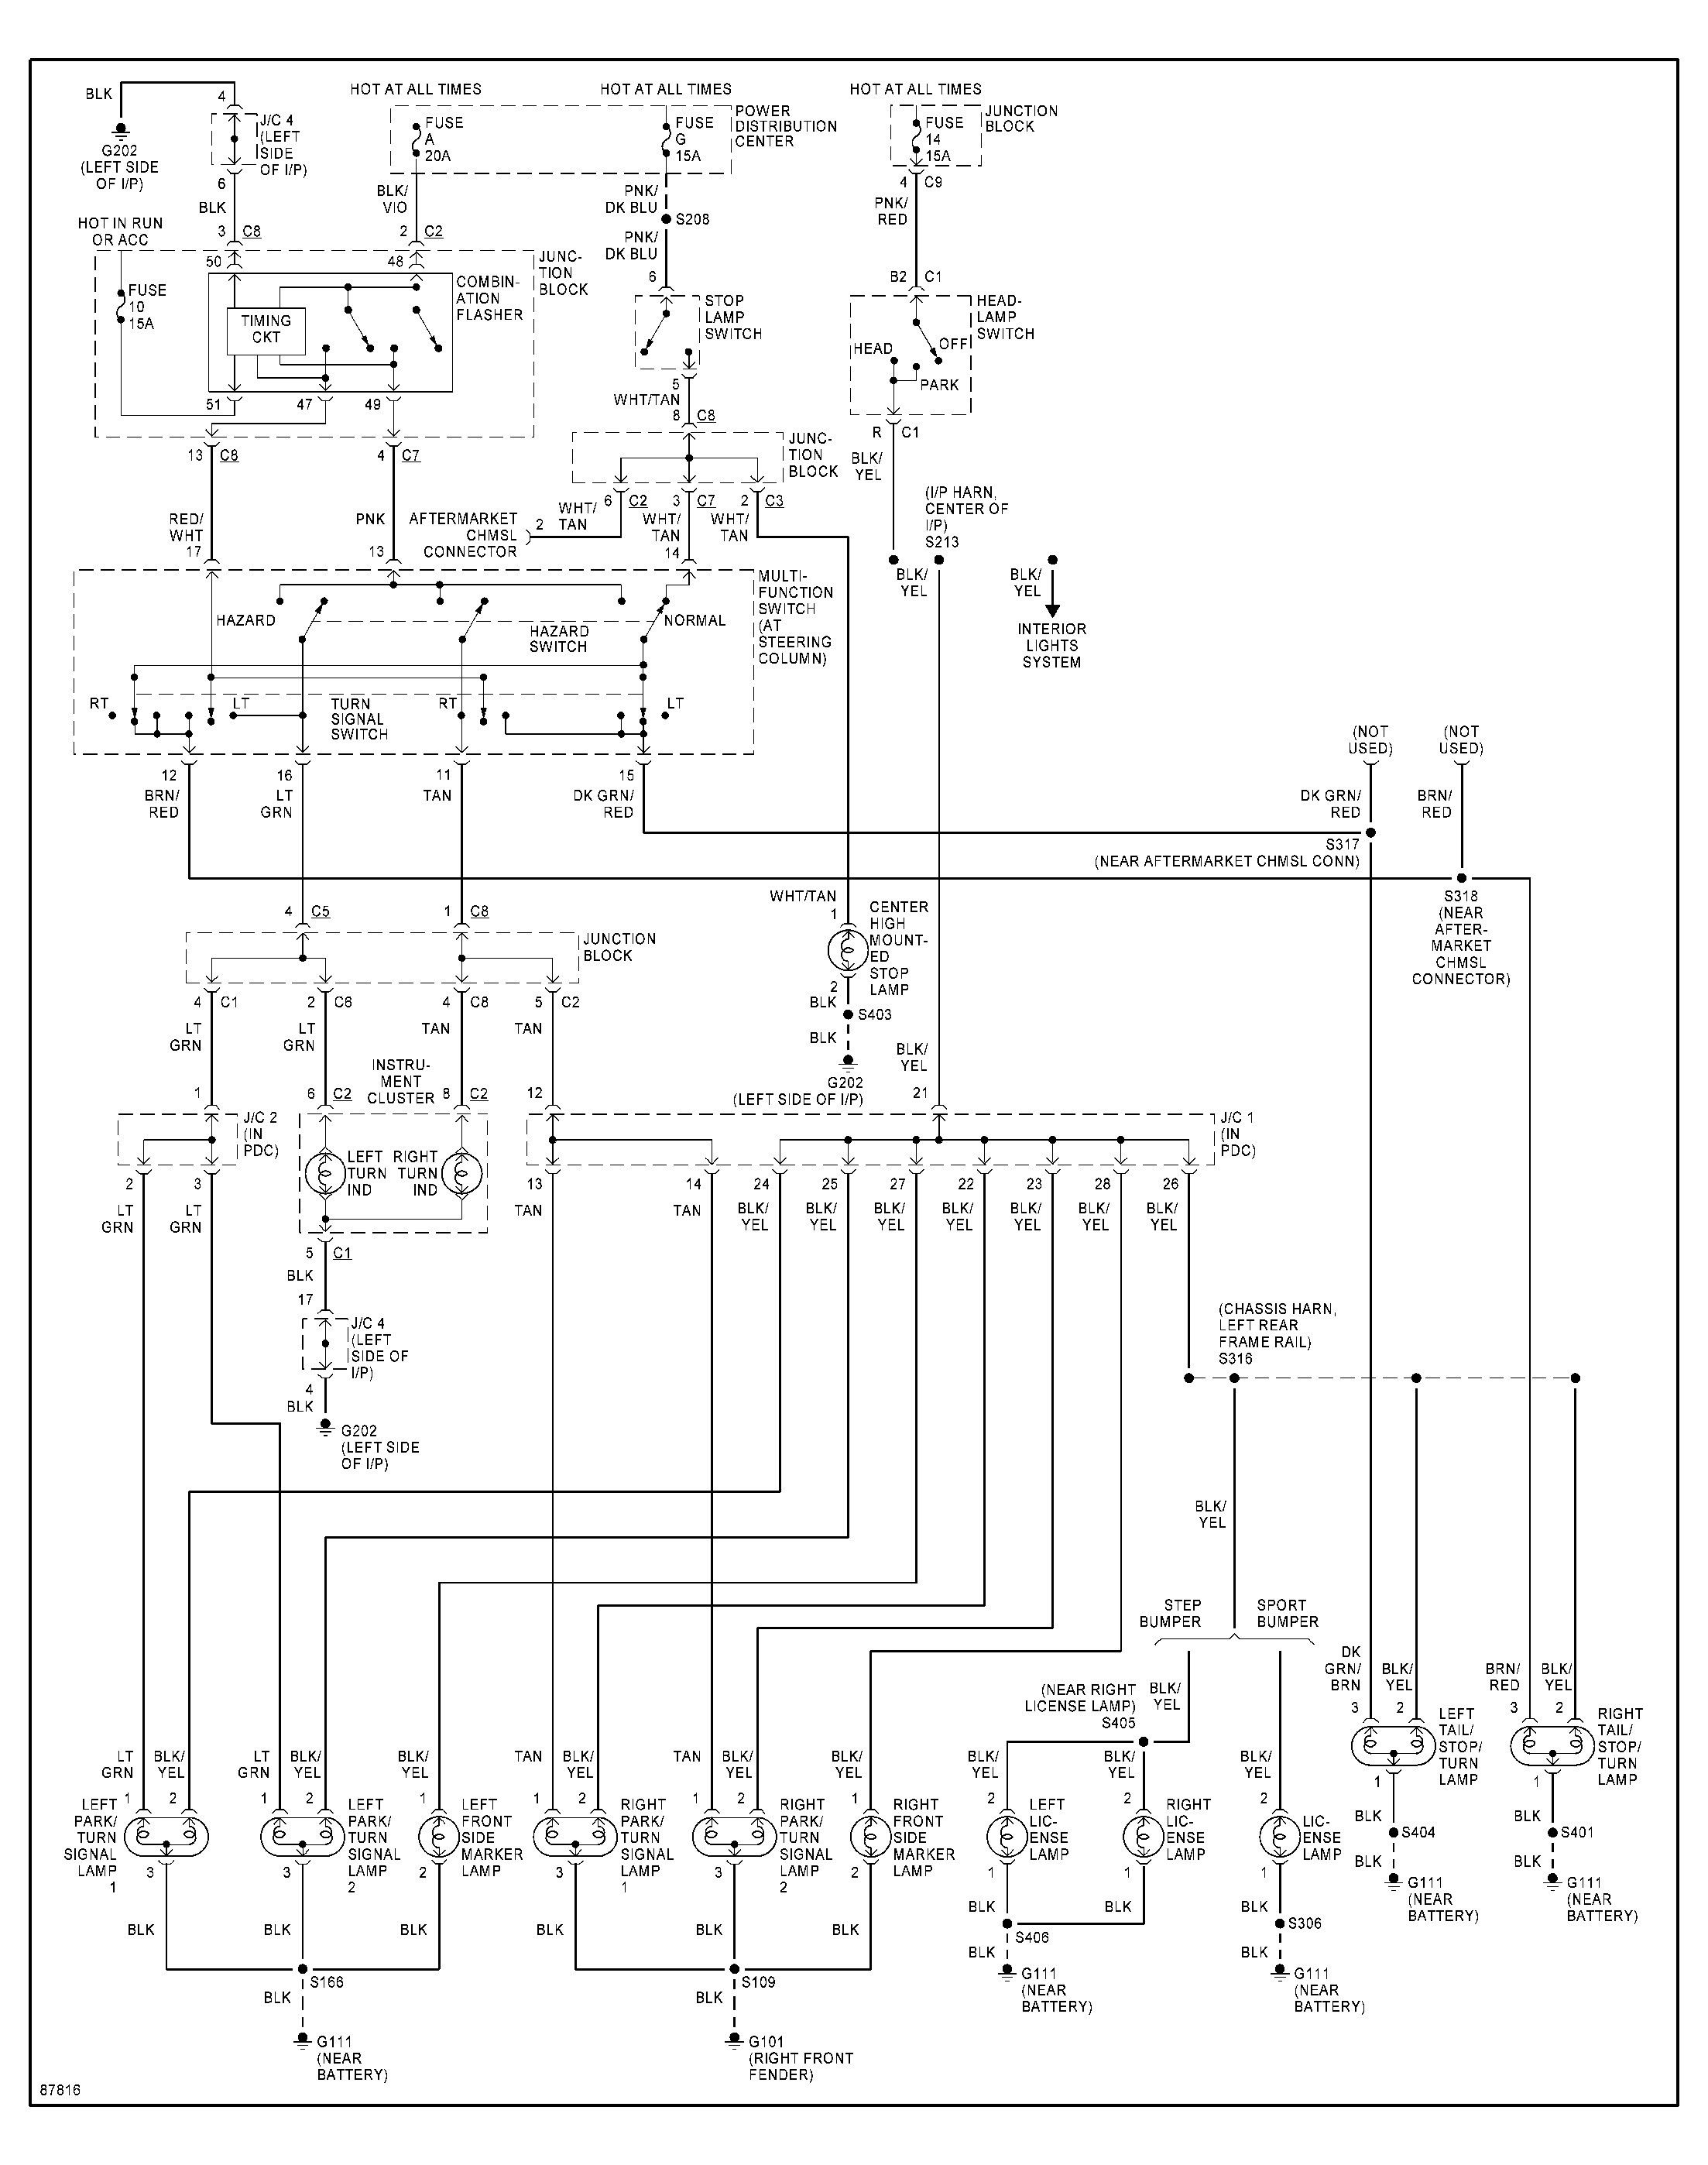 Unique 2002 Dodge Ram 1500 Instrument Cluster Wiring Diagram Diagram Diagramsample Diagramtemplate Wiringdiagram Diag Dodge Dakota Dodge Elektroschaltplan